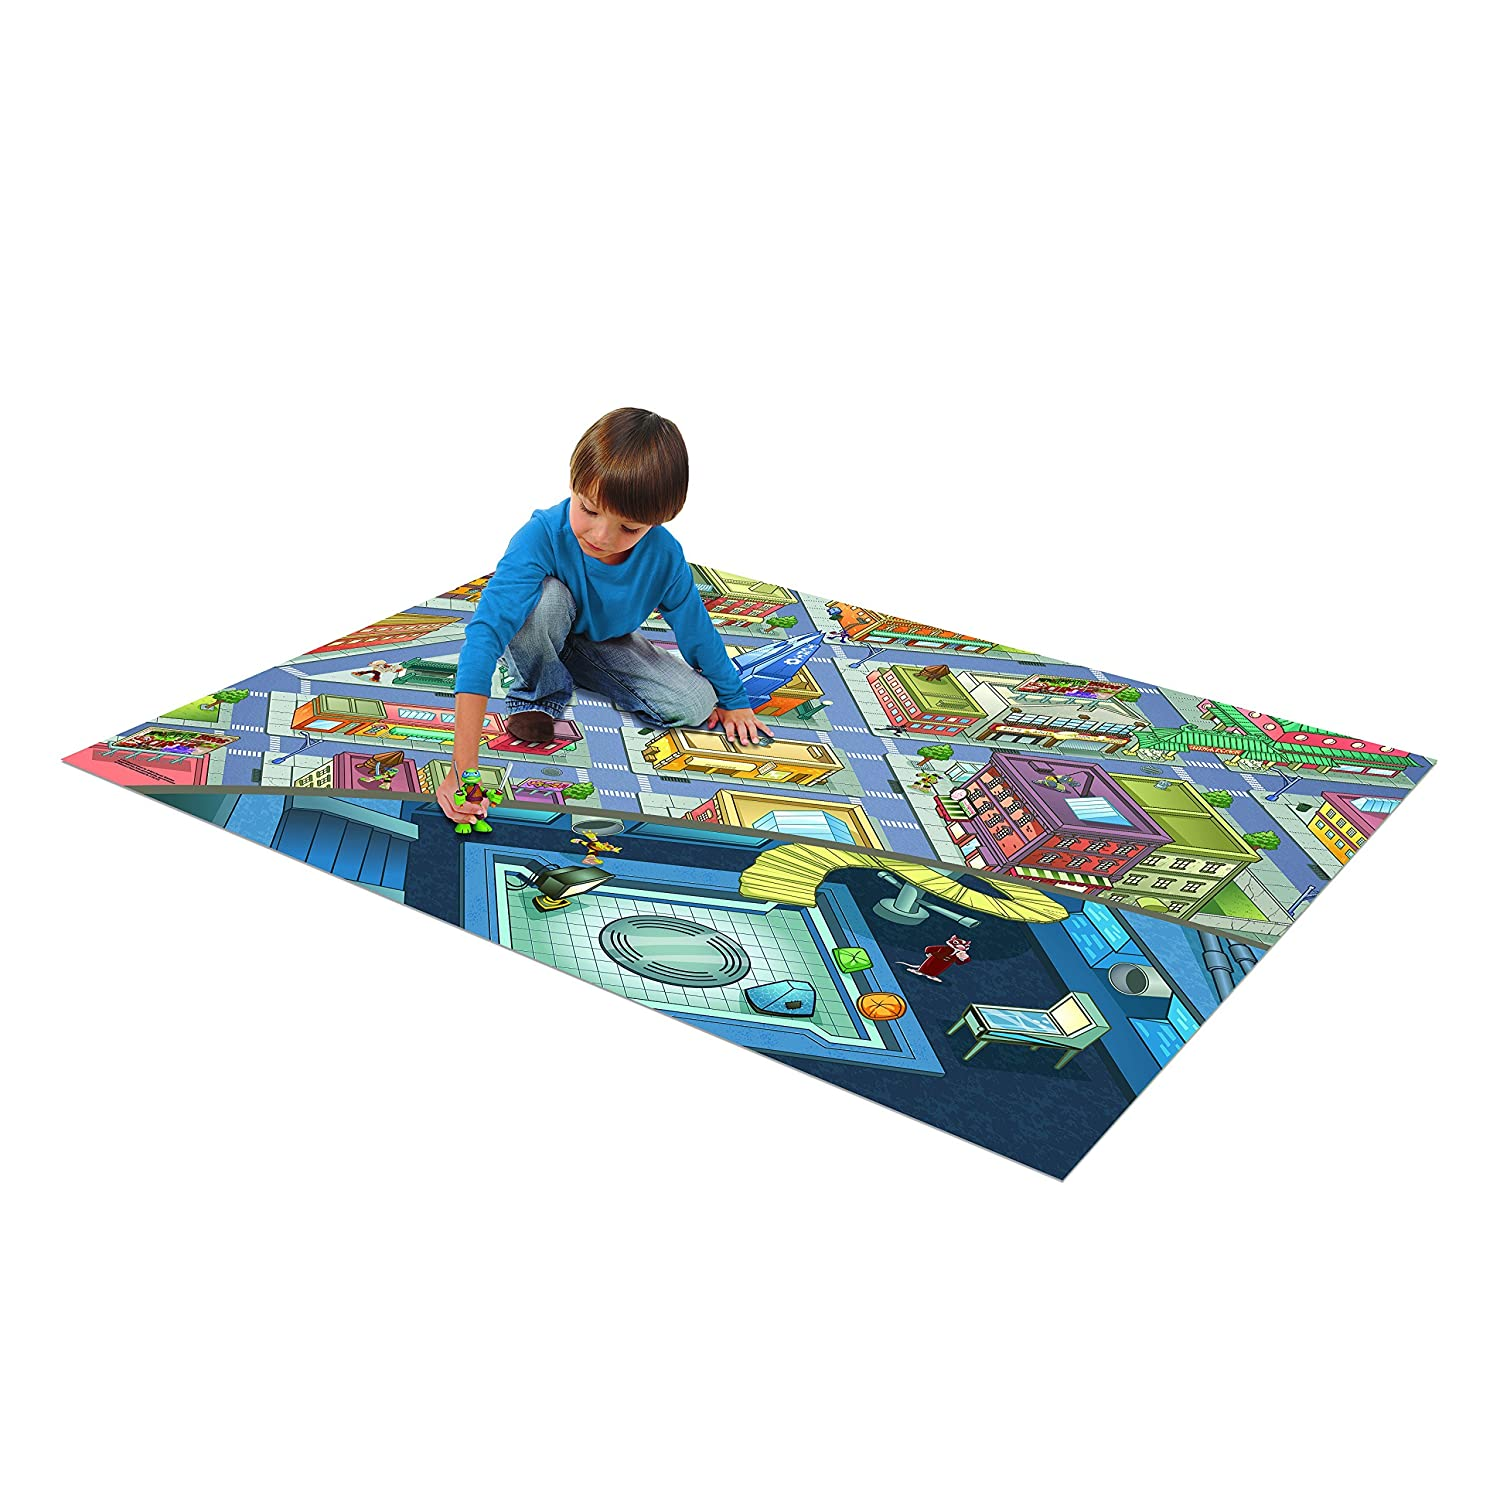 Amazon.com: Teenage Mutant Ninja Turtles Jumbo Mega Mat with Vehicle ...